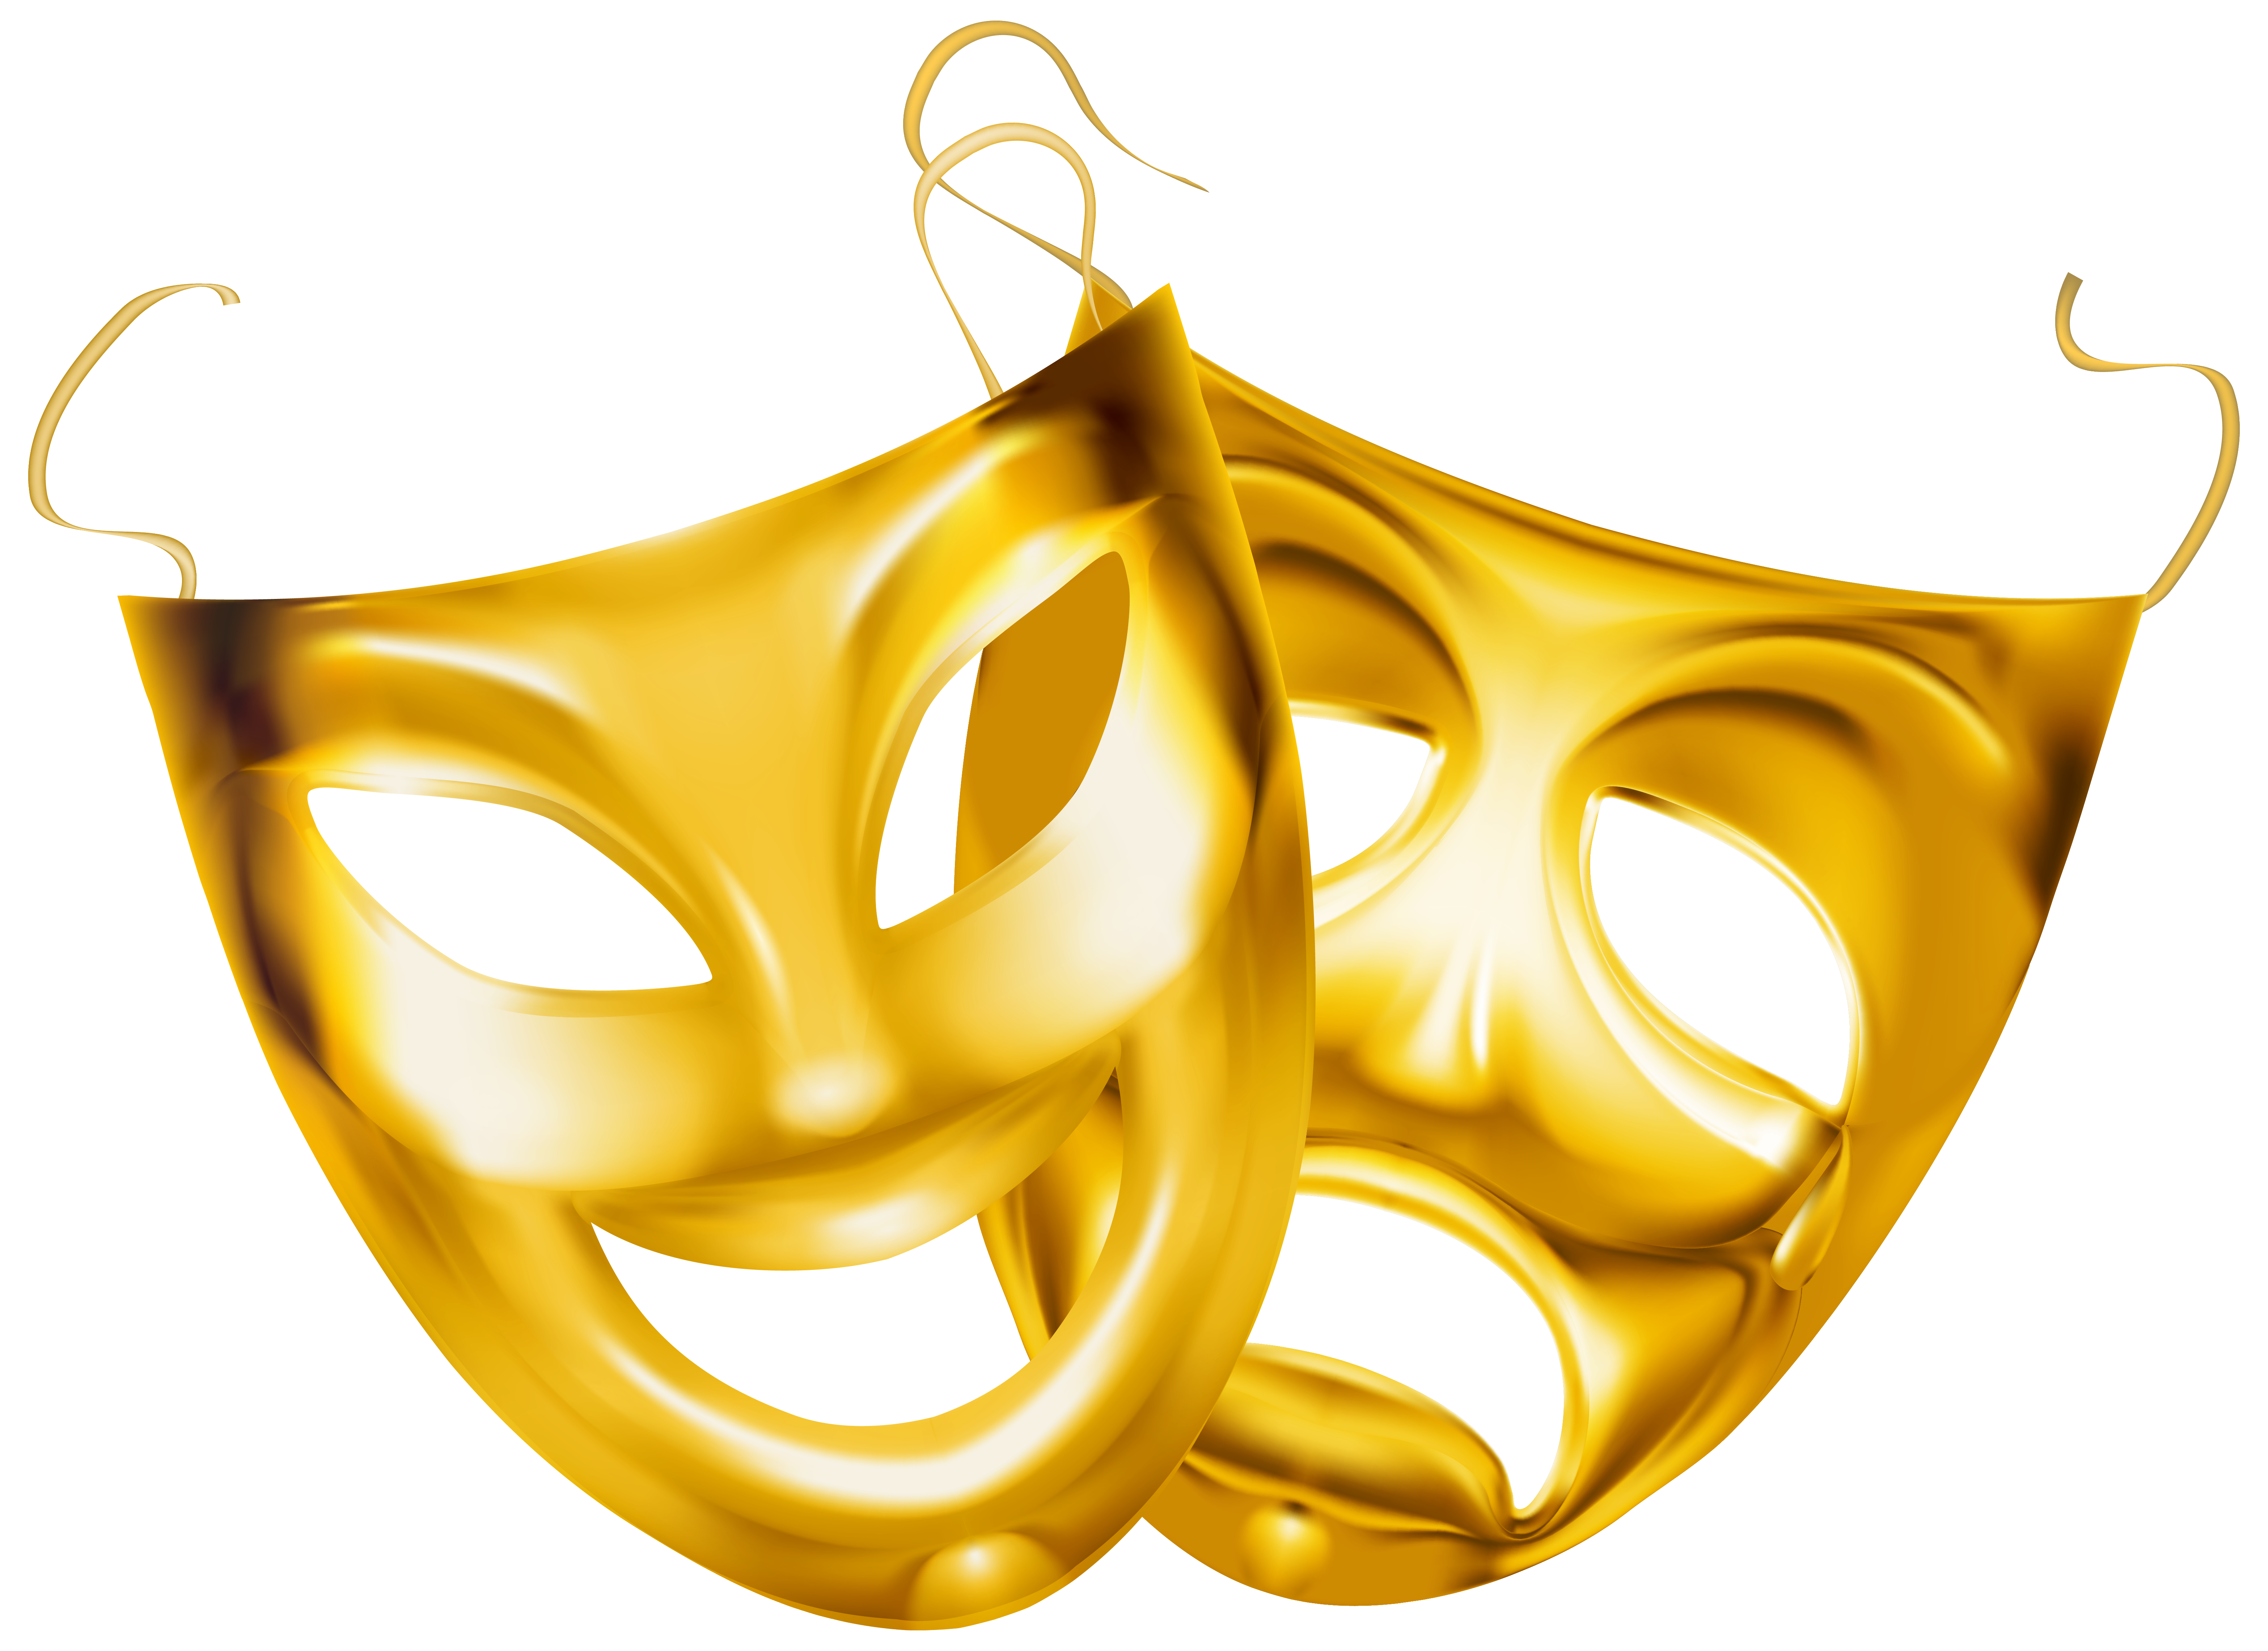 Broadway star clipart vector royalty free Gold Theater Masks PNG Clipart Image | Gallery Yopriceville - High ... vector royalty free